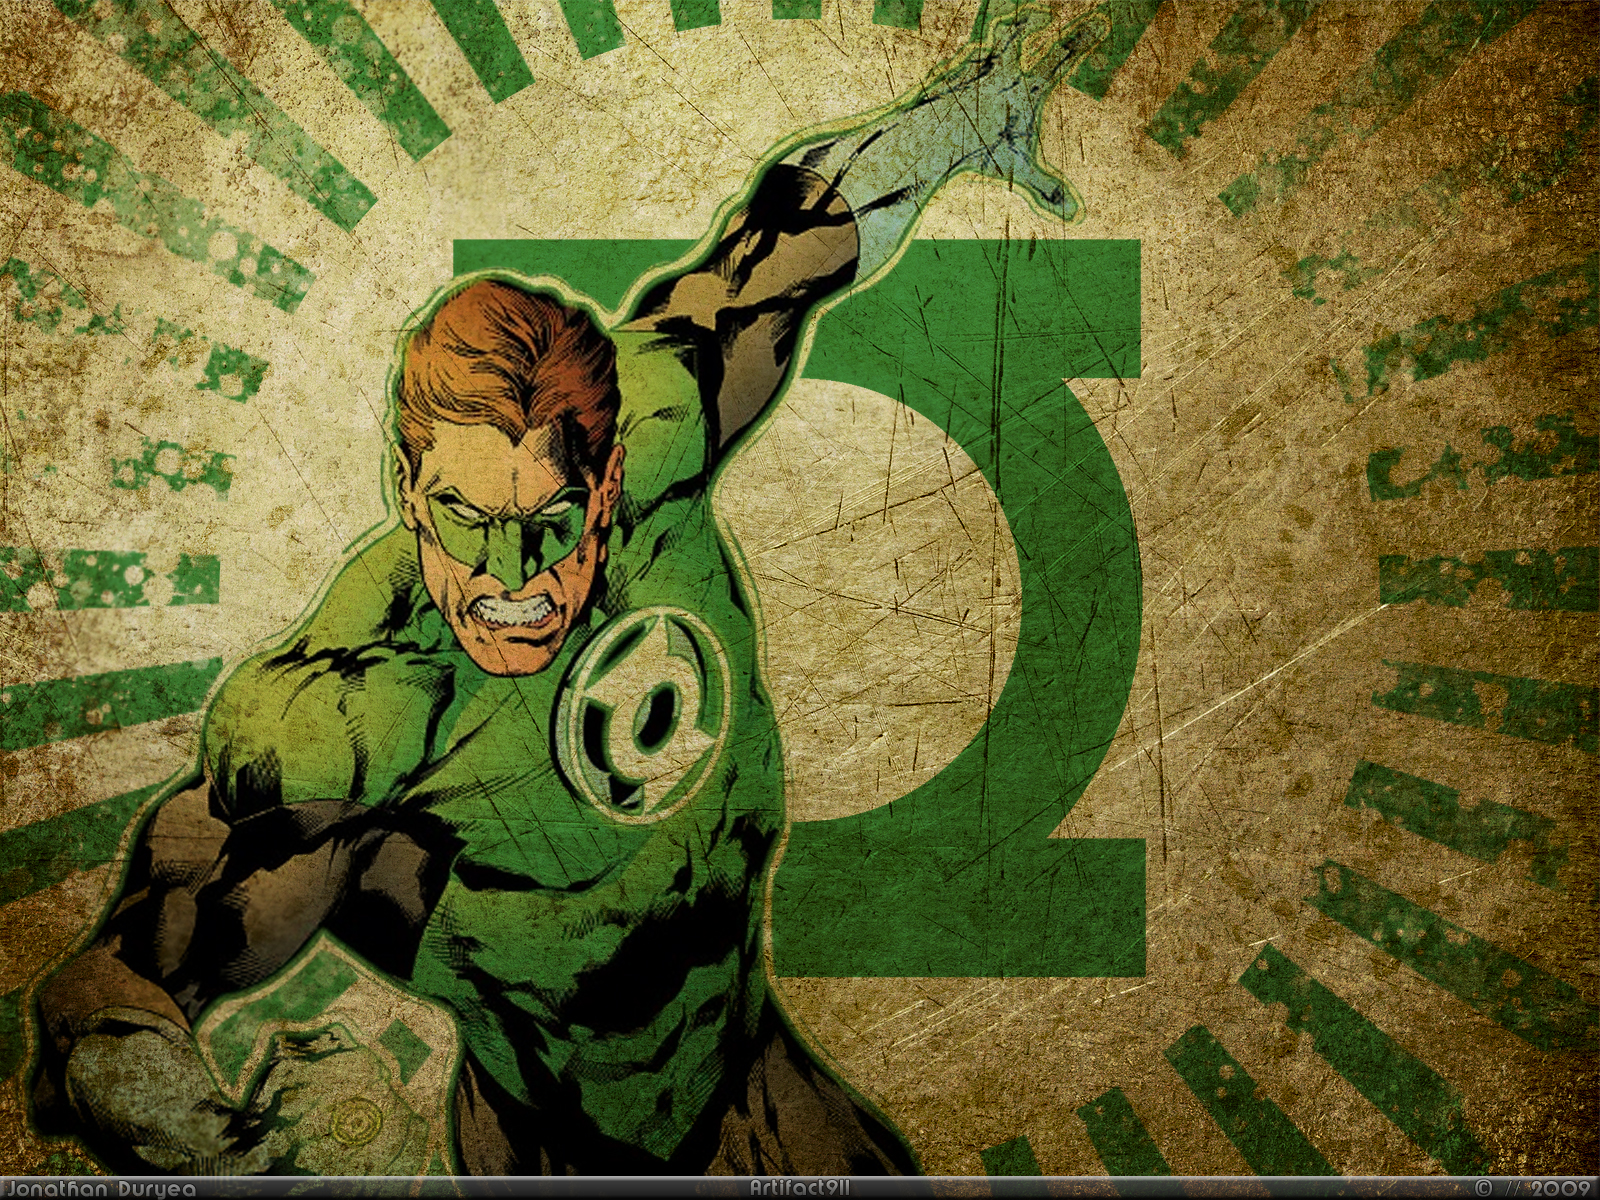 Green Lantern Wallpaper and Background Image | 1600x1200 | ID:87661 - Wallpaper Abyss